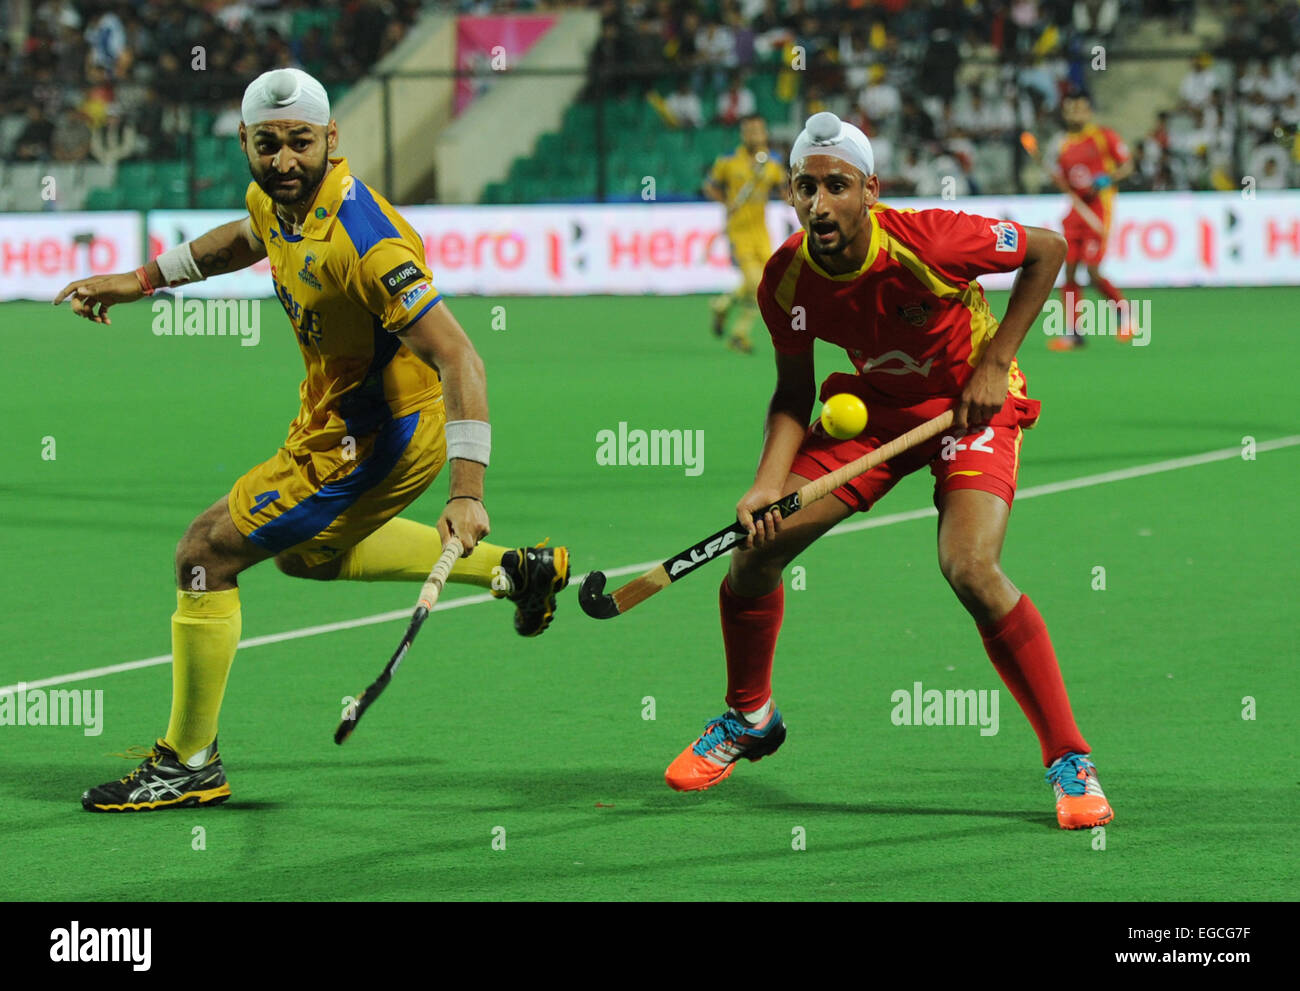 New Delhi, India. 22nd Feb, 2015. Mandeep Singh (R) of Ranchi Rays and Sandeep Singh of Punjab Warriors fight for - Stock Image